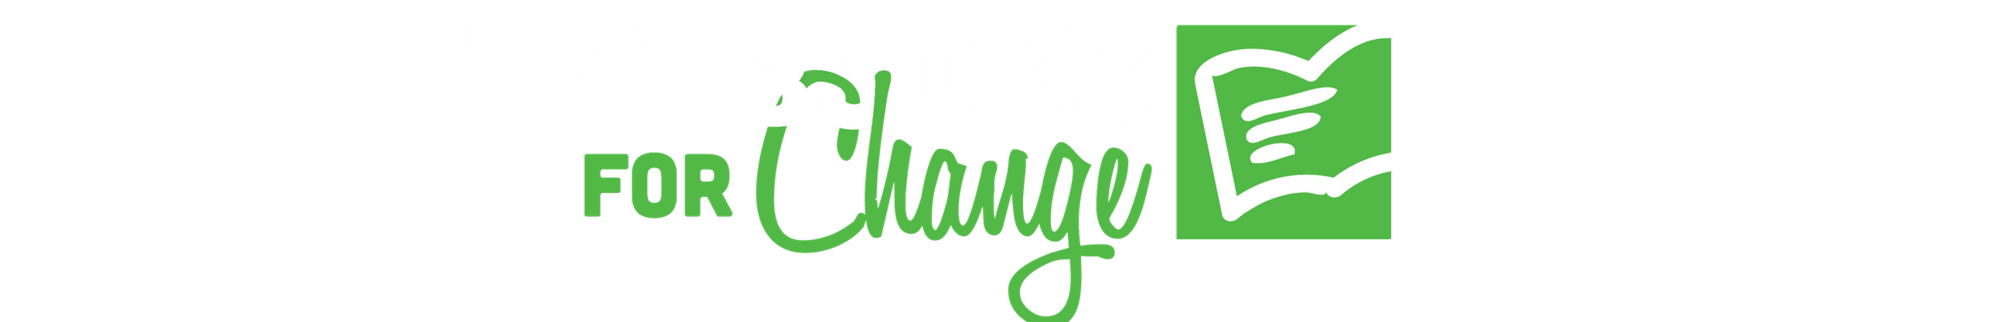 Textbooks for Change B corp logo